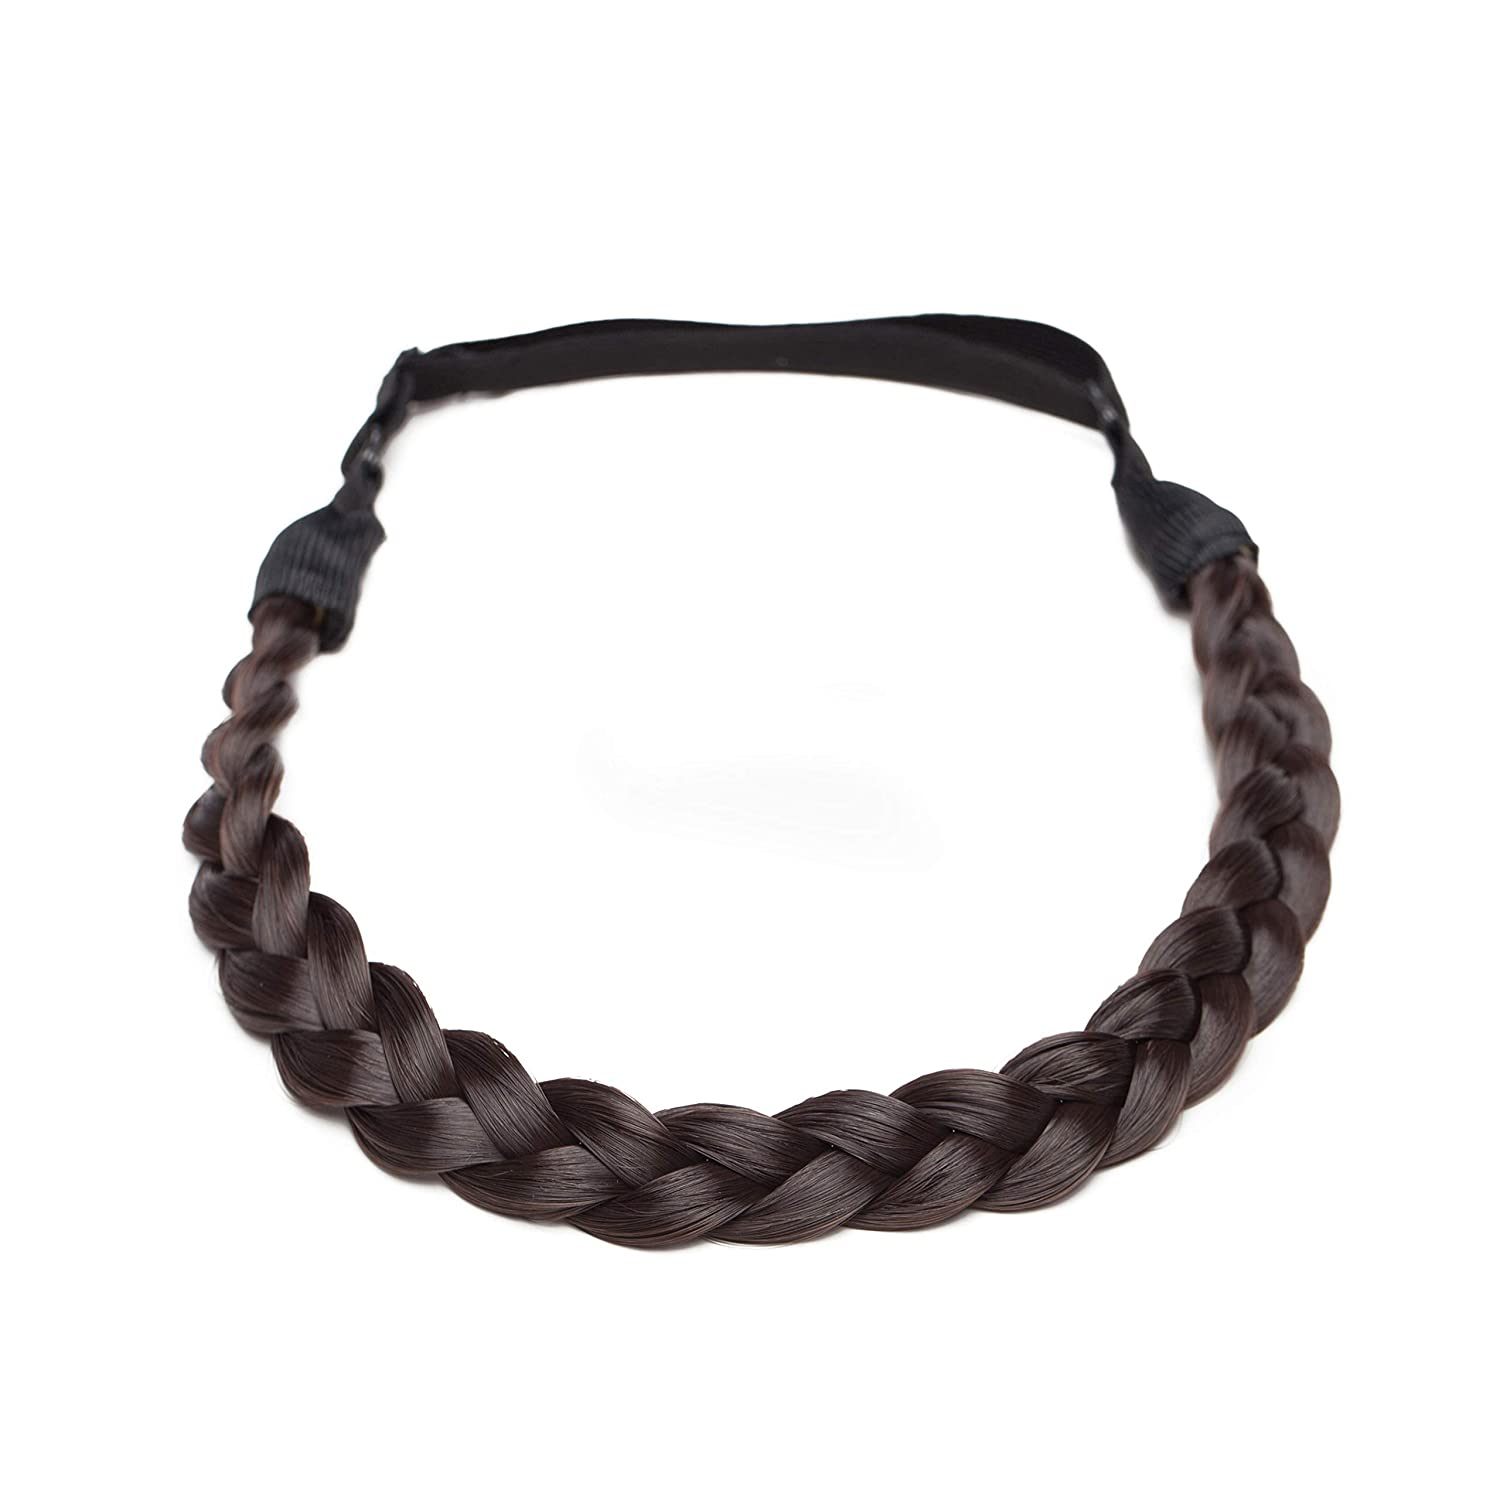 Braided Headband Japan Maker New Excellence #4A